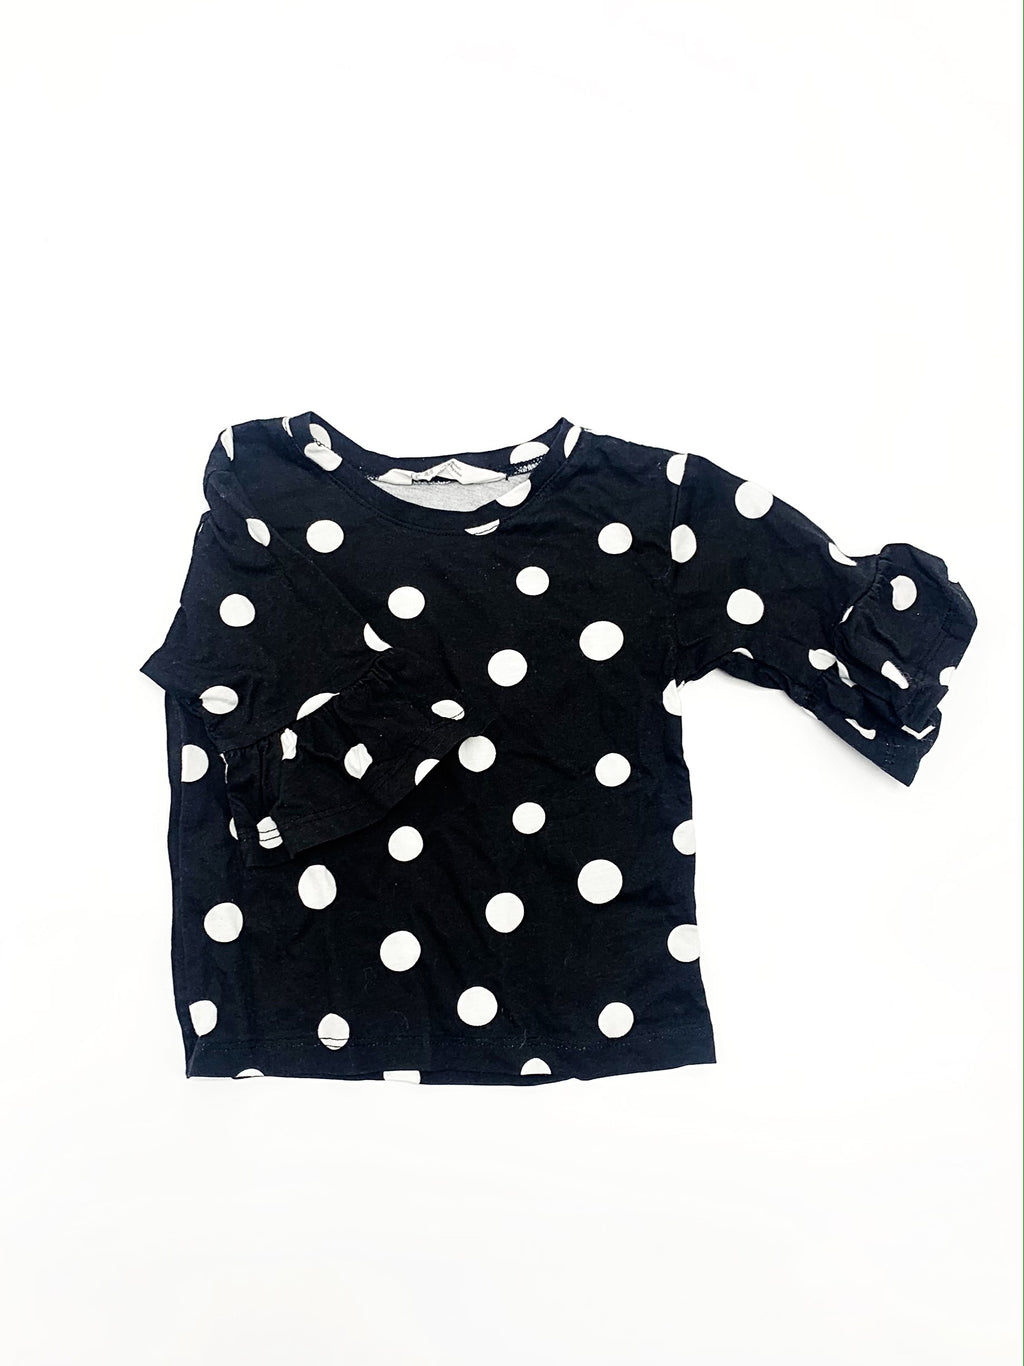 H&M top size 18-24m